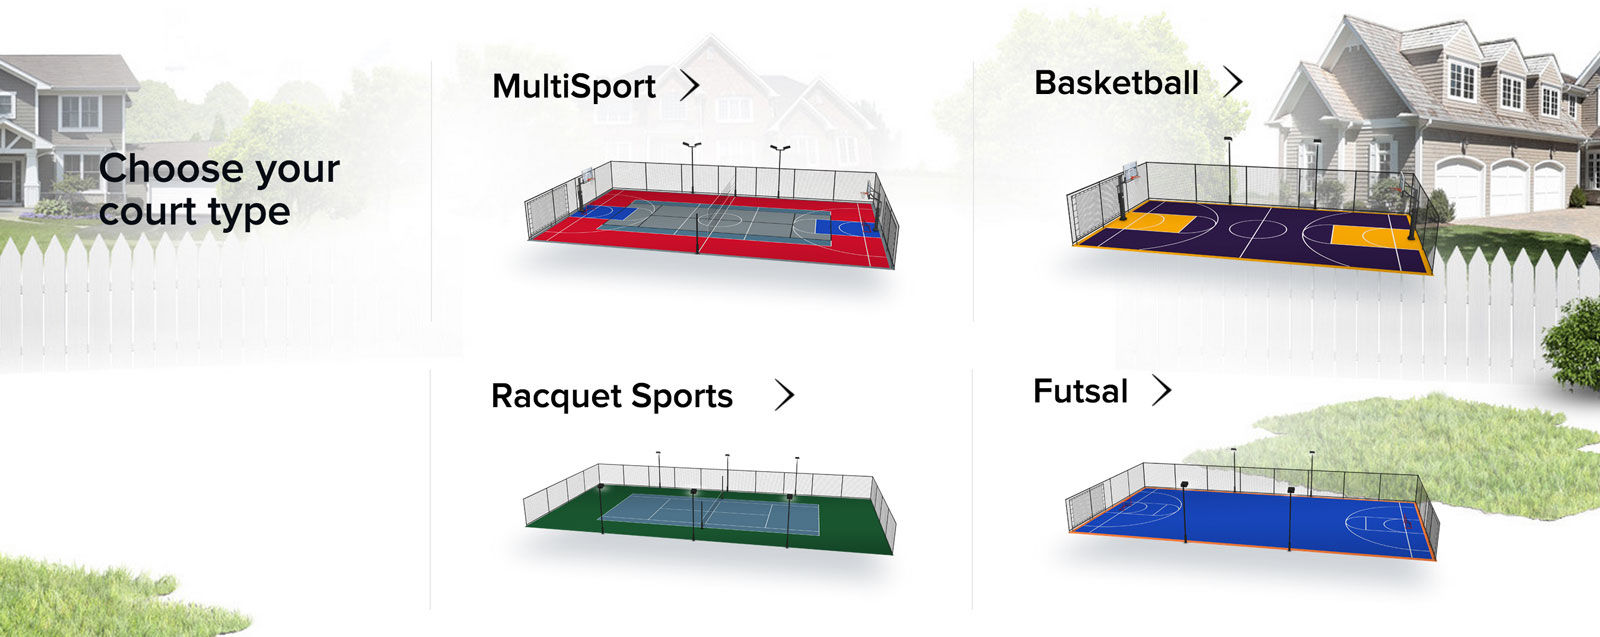 Fitness Studios Facilities | Sport Court on recreational backyard ideas, soccer backyard ideas, family backyard ideas, beach backyard ideas, outdoor backyard ideas, football backyard ideas, camping backyard ideas, golf backyard ideas, fencing backyard ideas, paintball backyard ideas, home backyard ideas, pool backyard ideas, southern living backyard ideas, sports backyard ideas, playground backyard ideas,